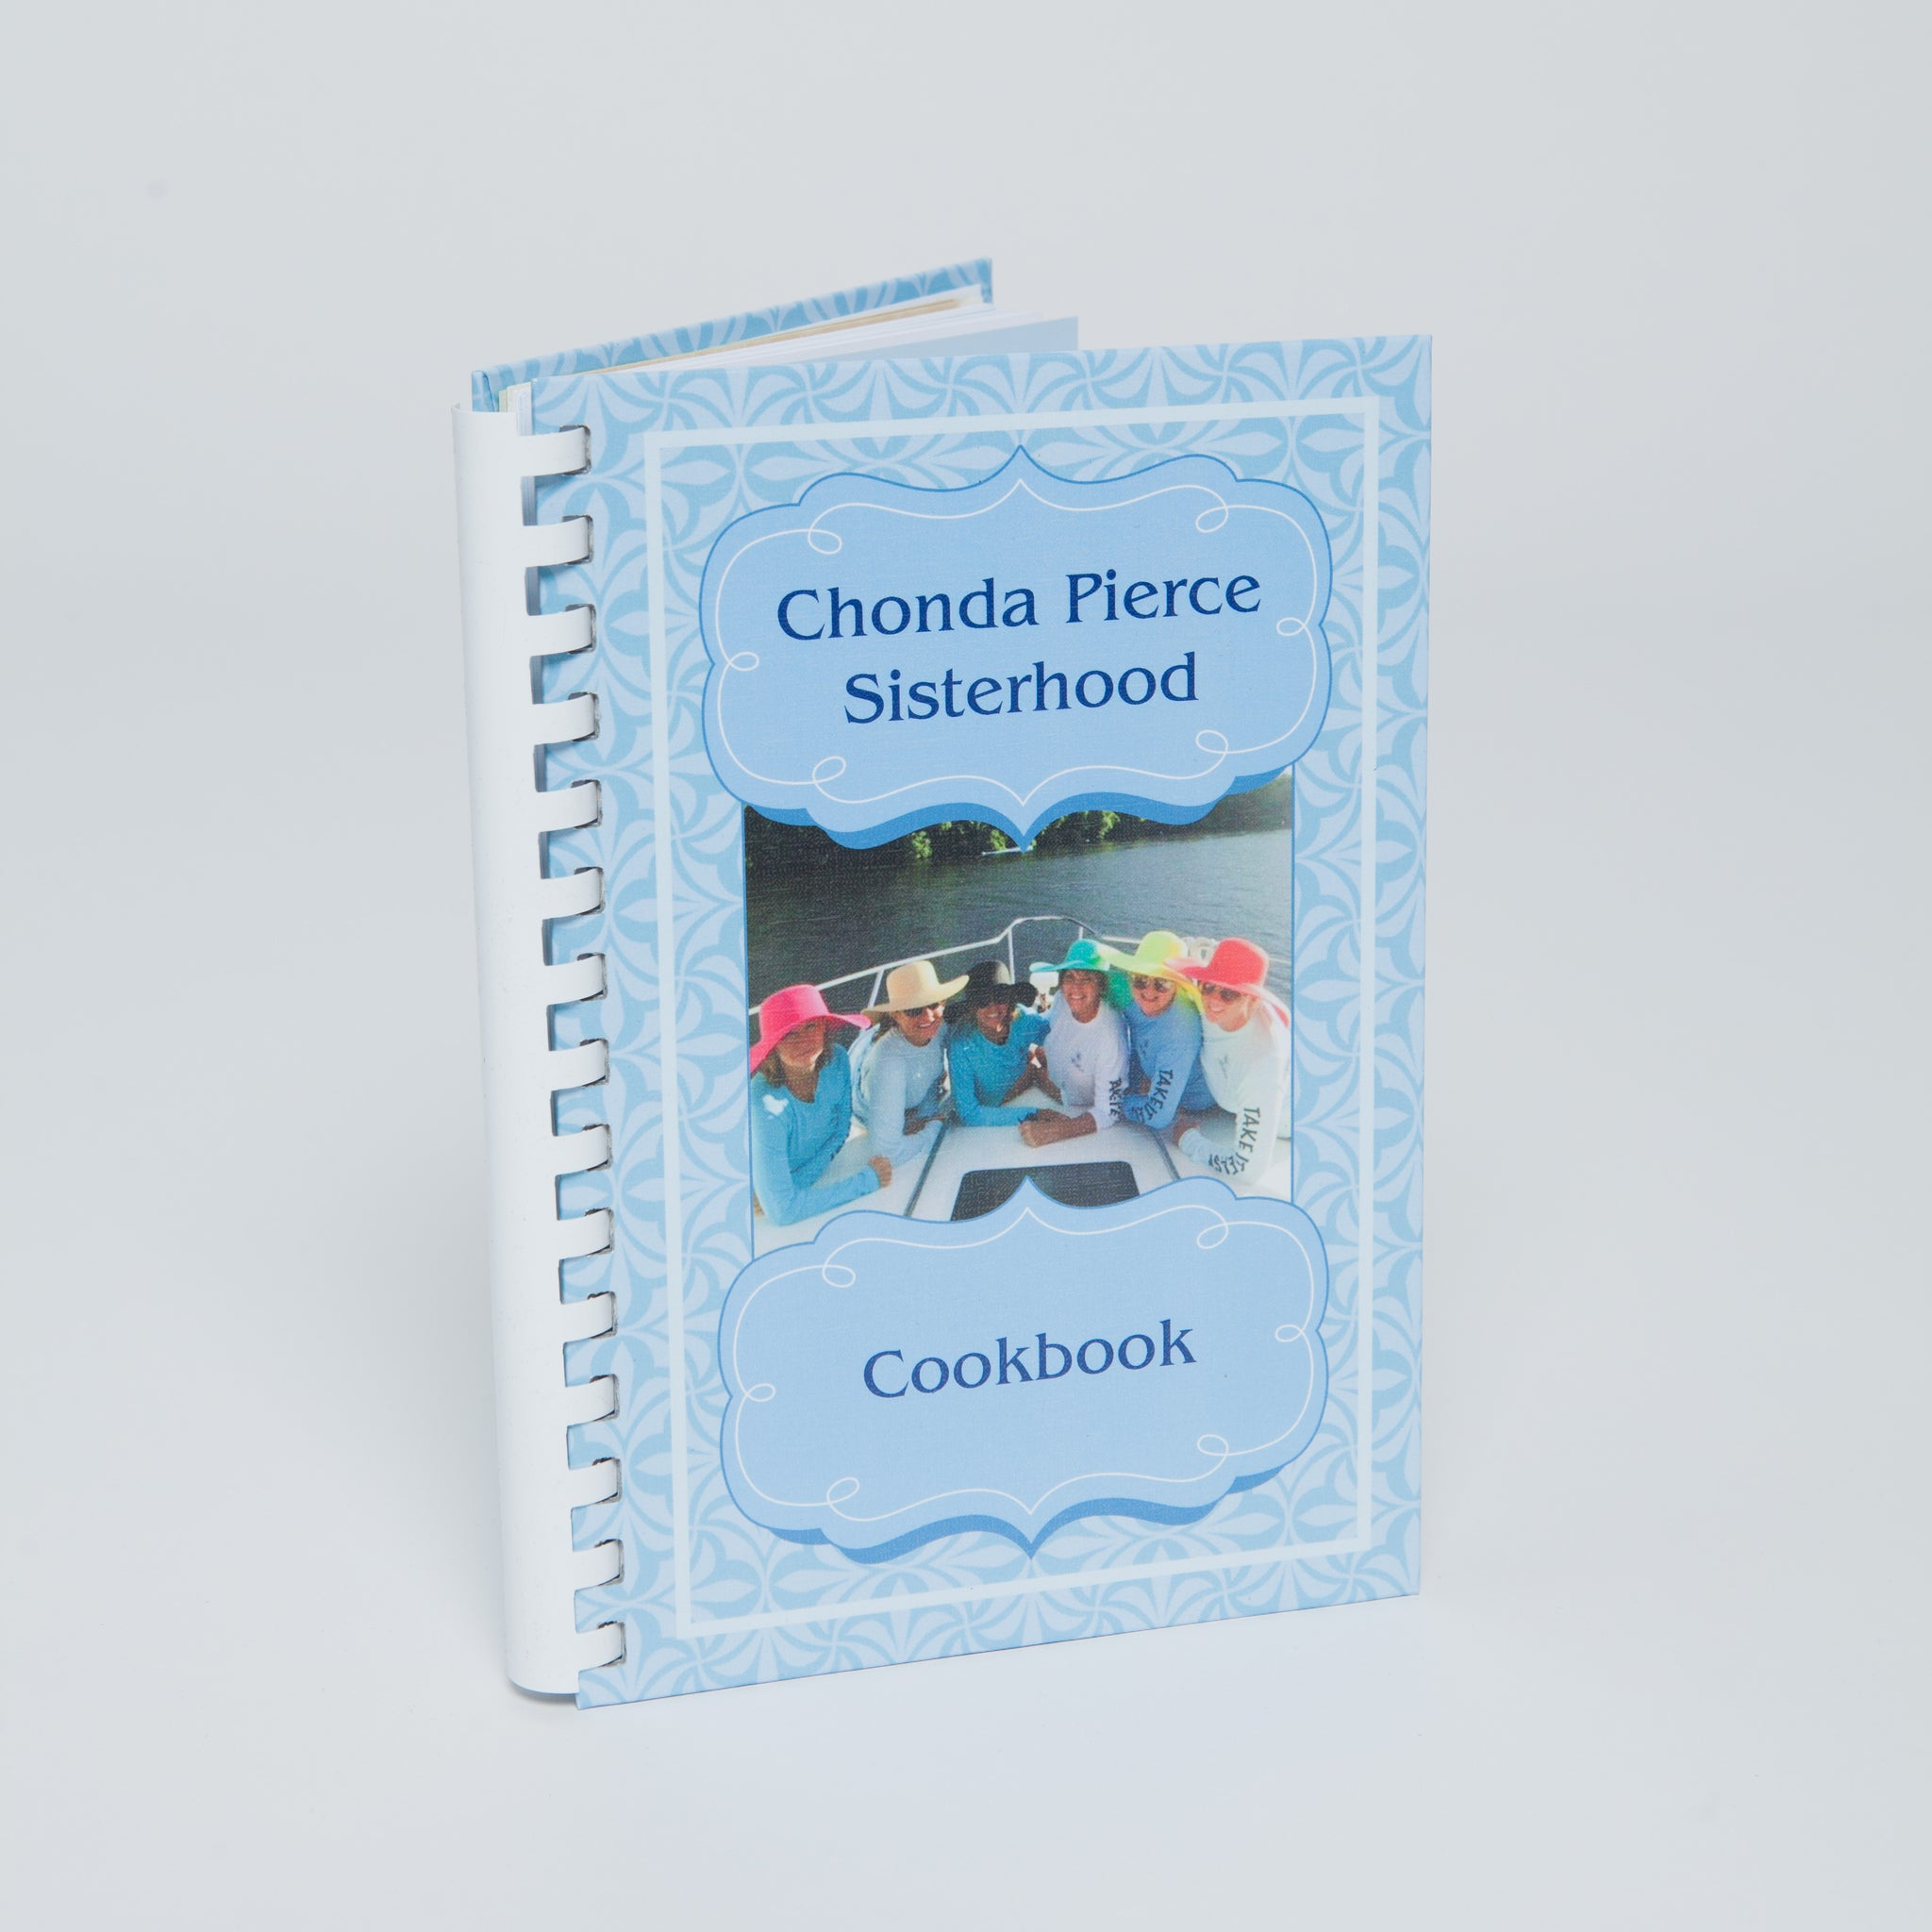 Chonda Pierce Sisterhood Cookbook